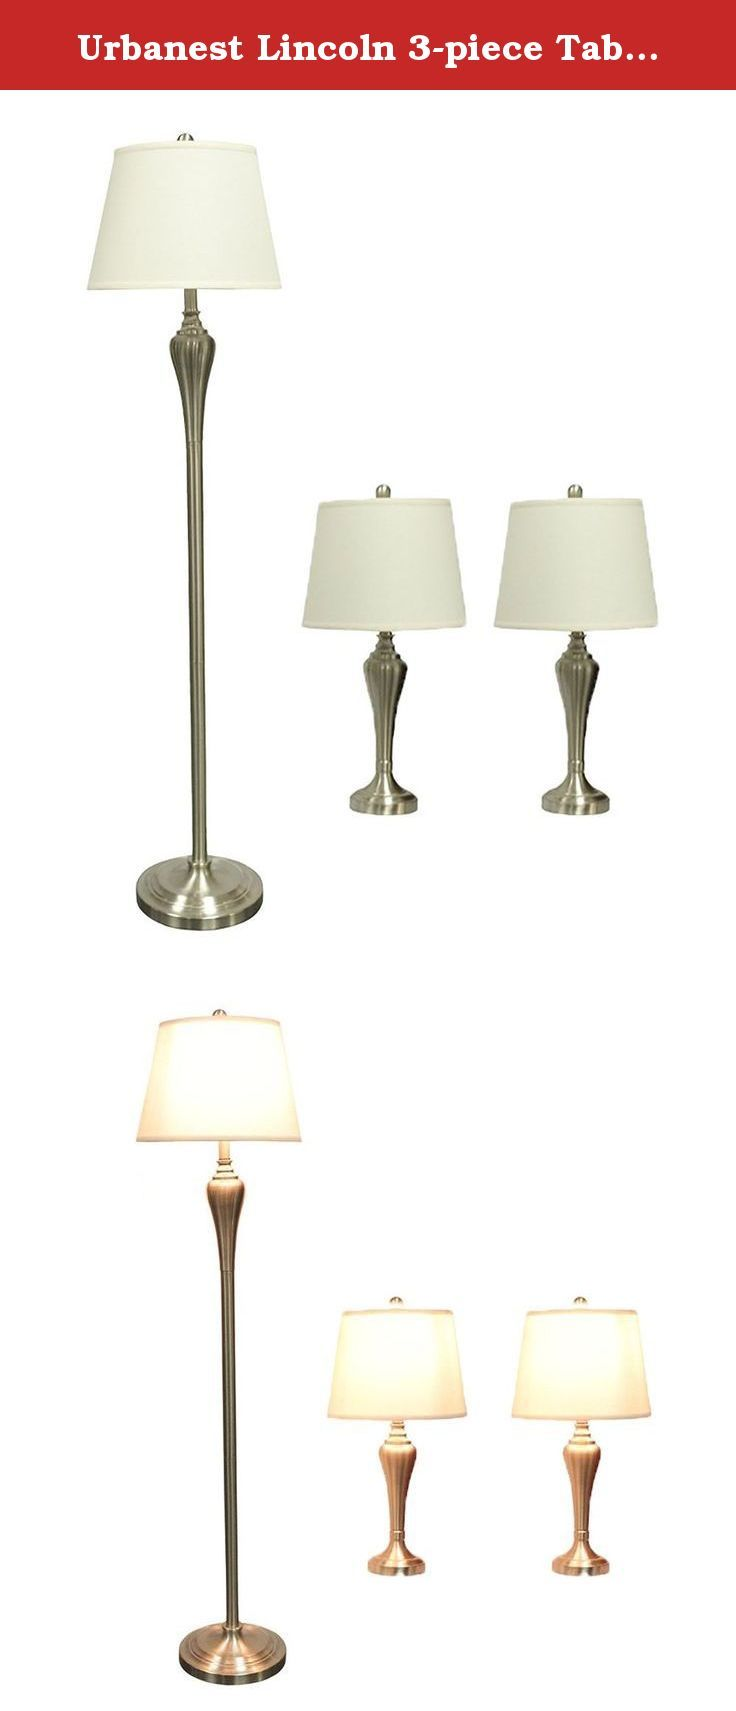 Urbanest lincoln 3 piece table and floor lamp set in brushed urbanest lincoln 3 piece table and floor lamp set in brushed nickel with beige linen geotapseo Image collections